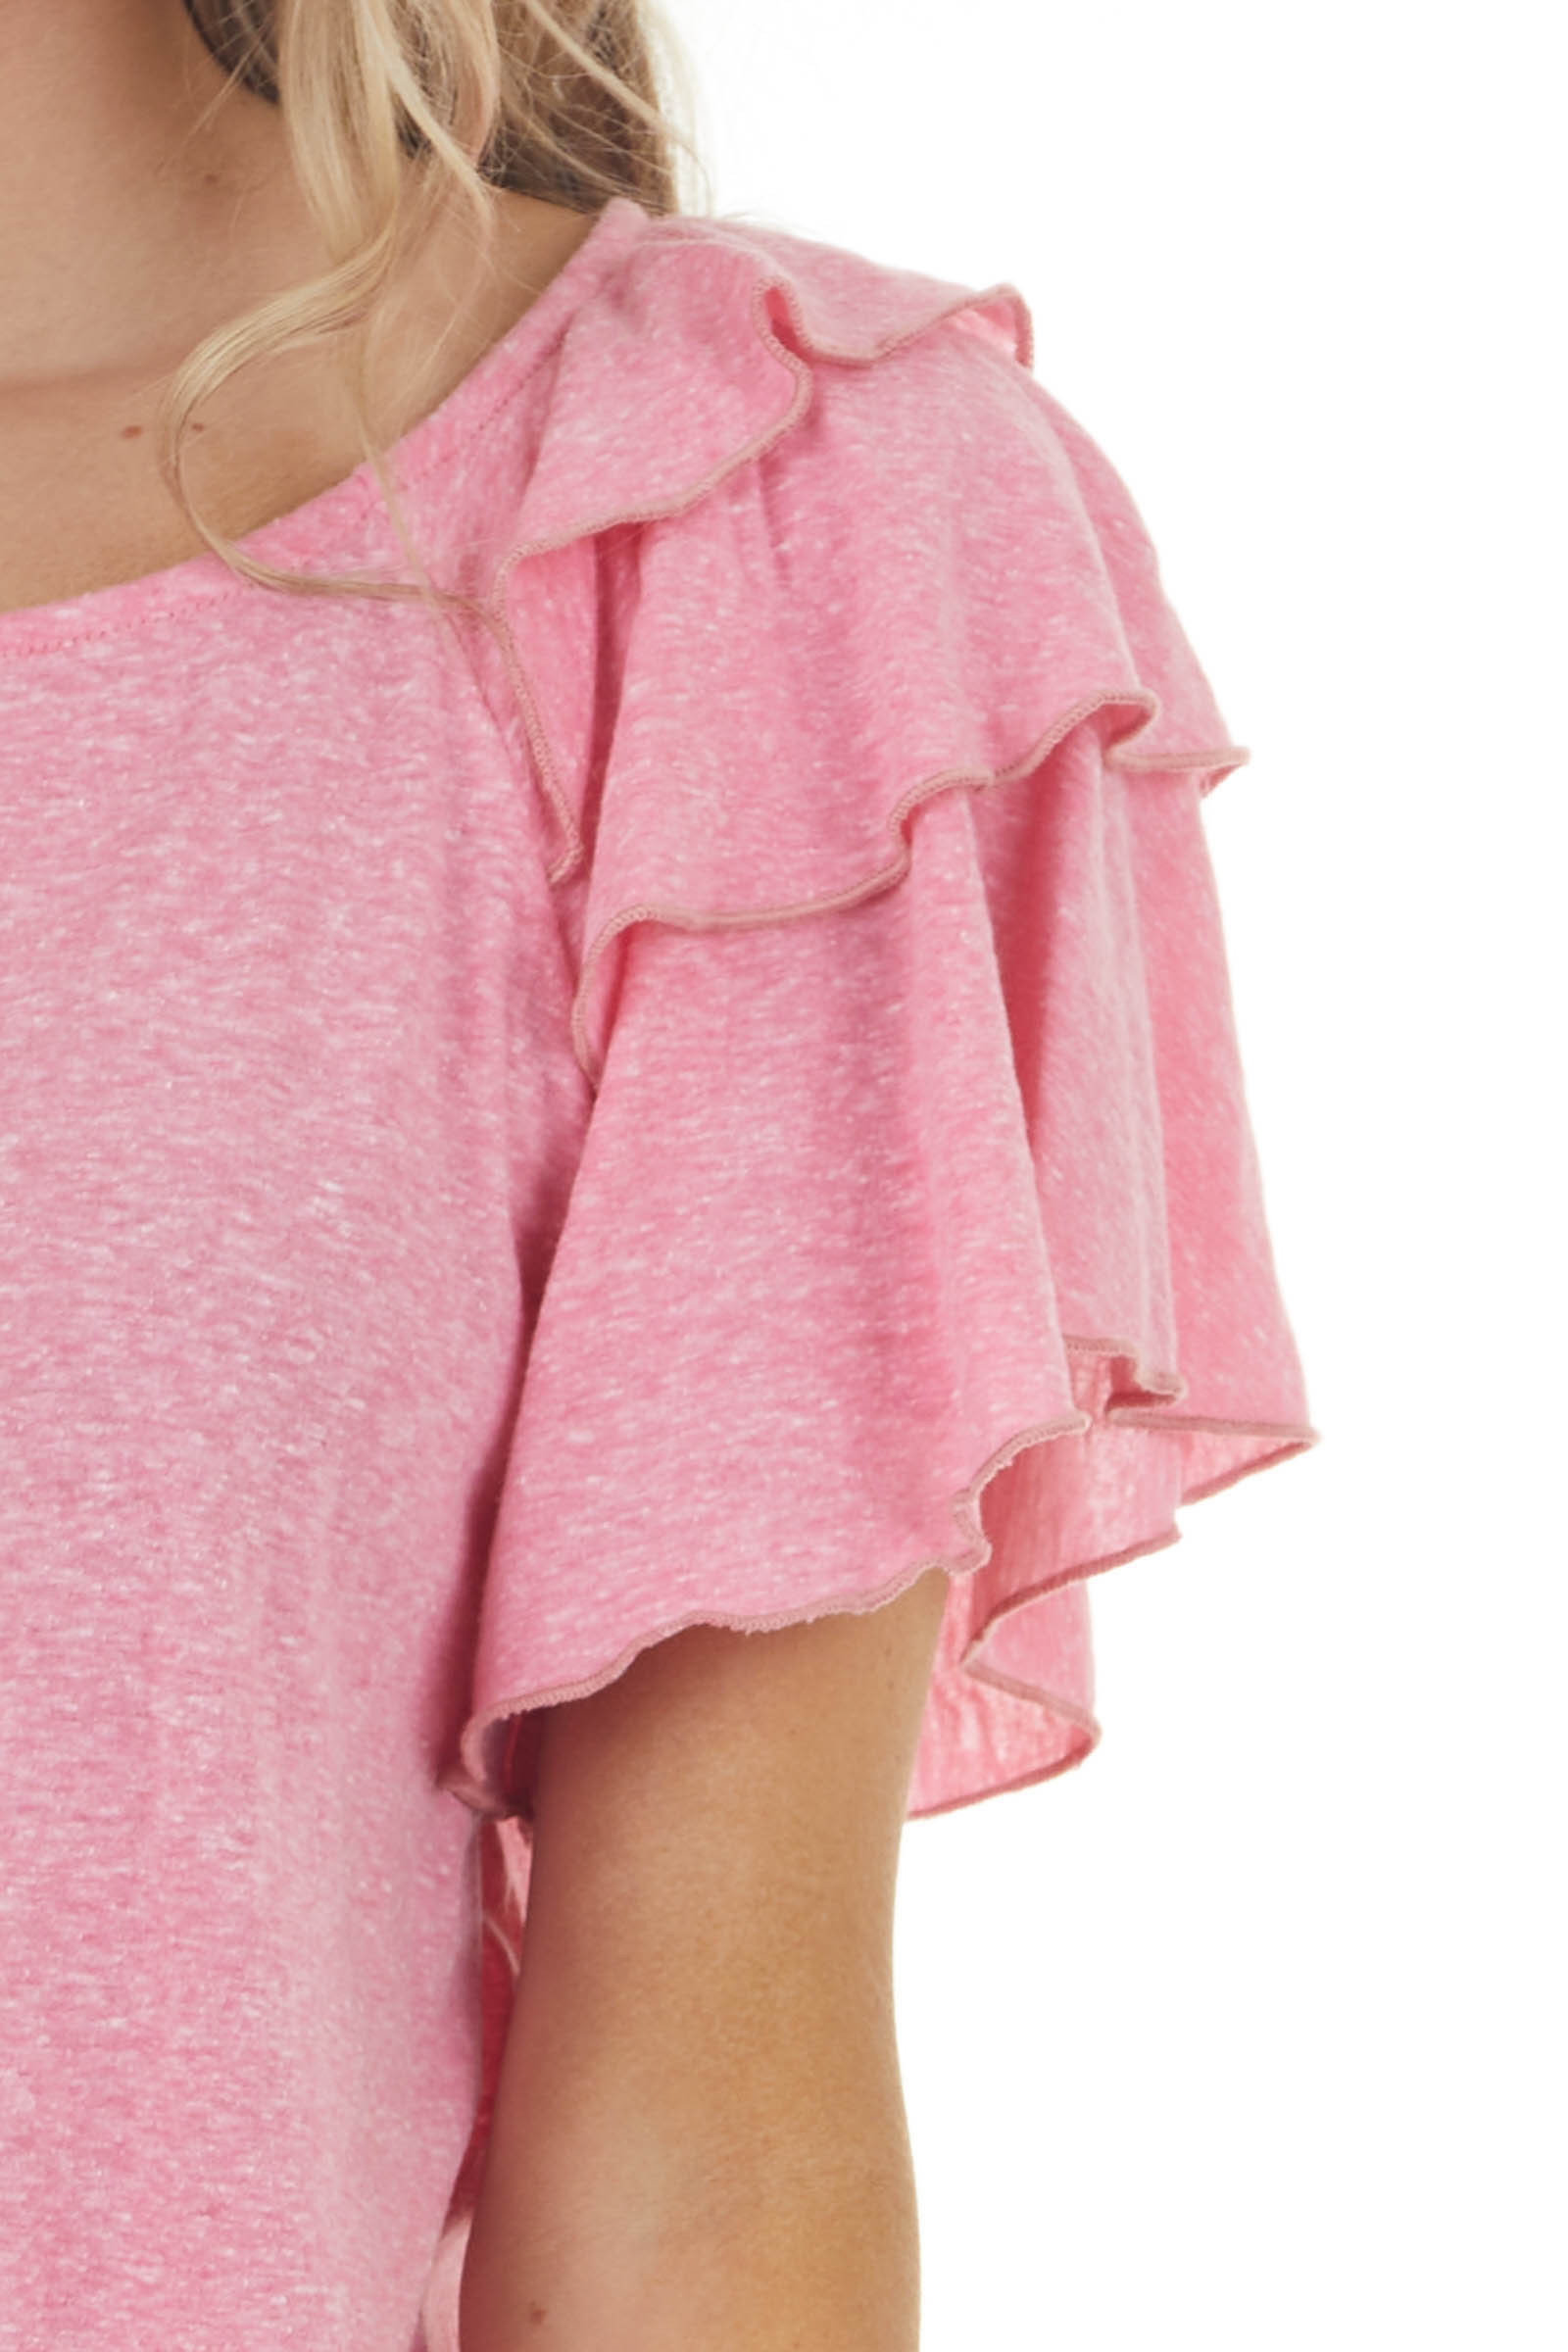 Melange Pink Knit Top with Short Layered Ruffle Sleeves